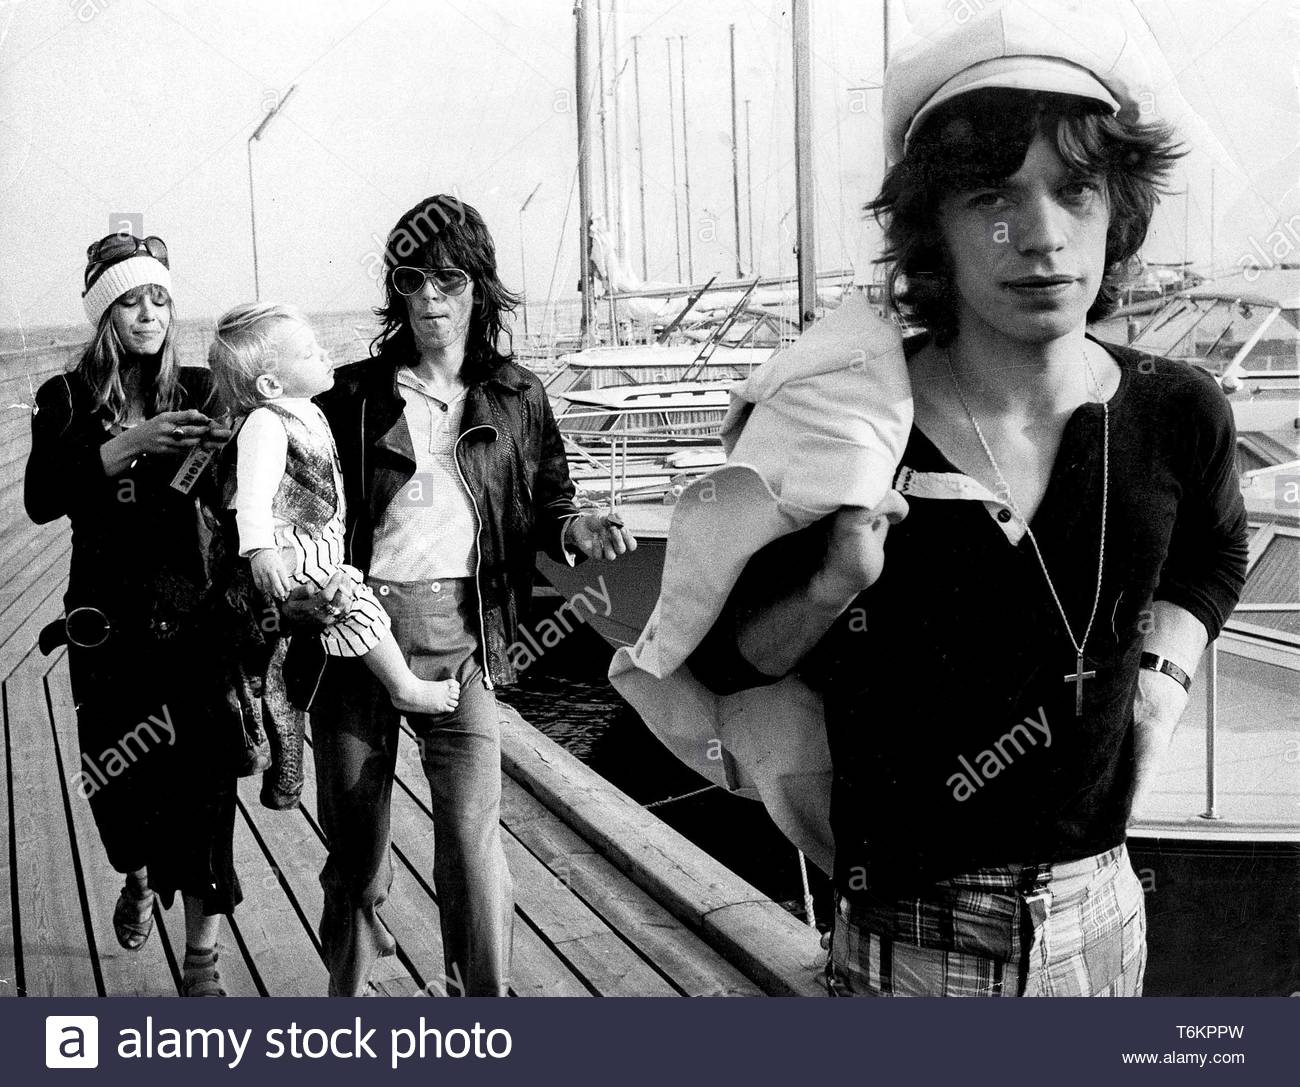 Mick Jagger And Keith Richards Of Rolling Stones With Keith 'S Girlfriend Anita Pallenberg And Their Child In Sweden 8-31-1970 Credit: 370731Globe Photos/MediaPunch - Stock Image